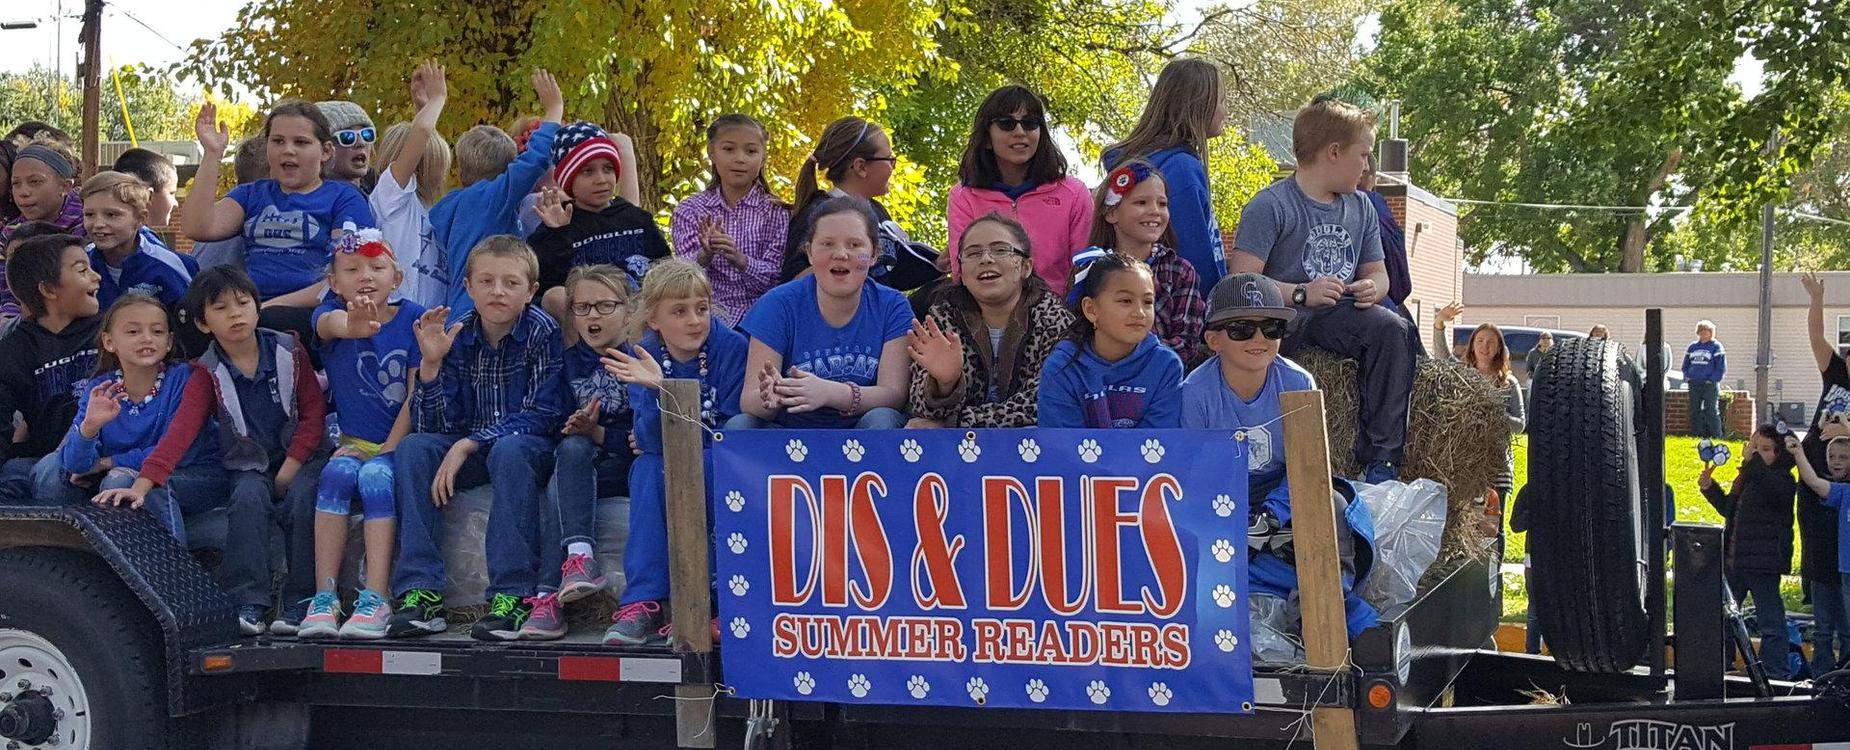 DIS Summer Readers on homecoming parade float